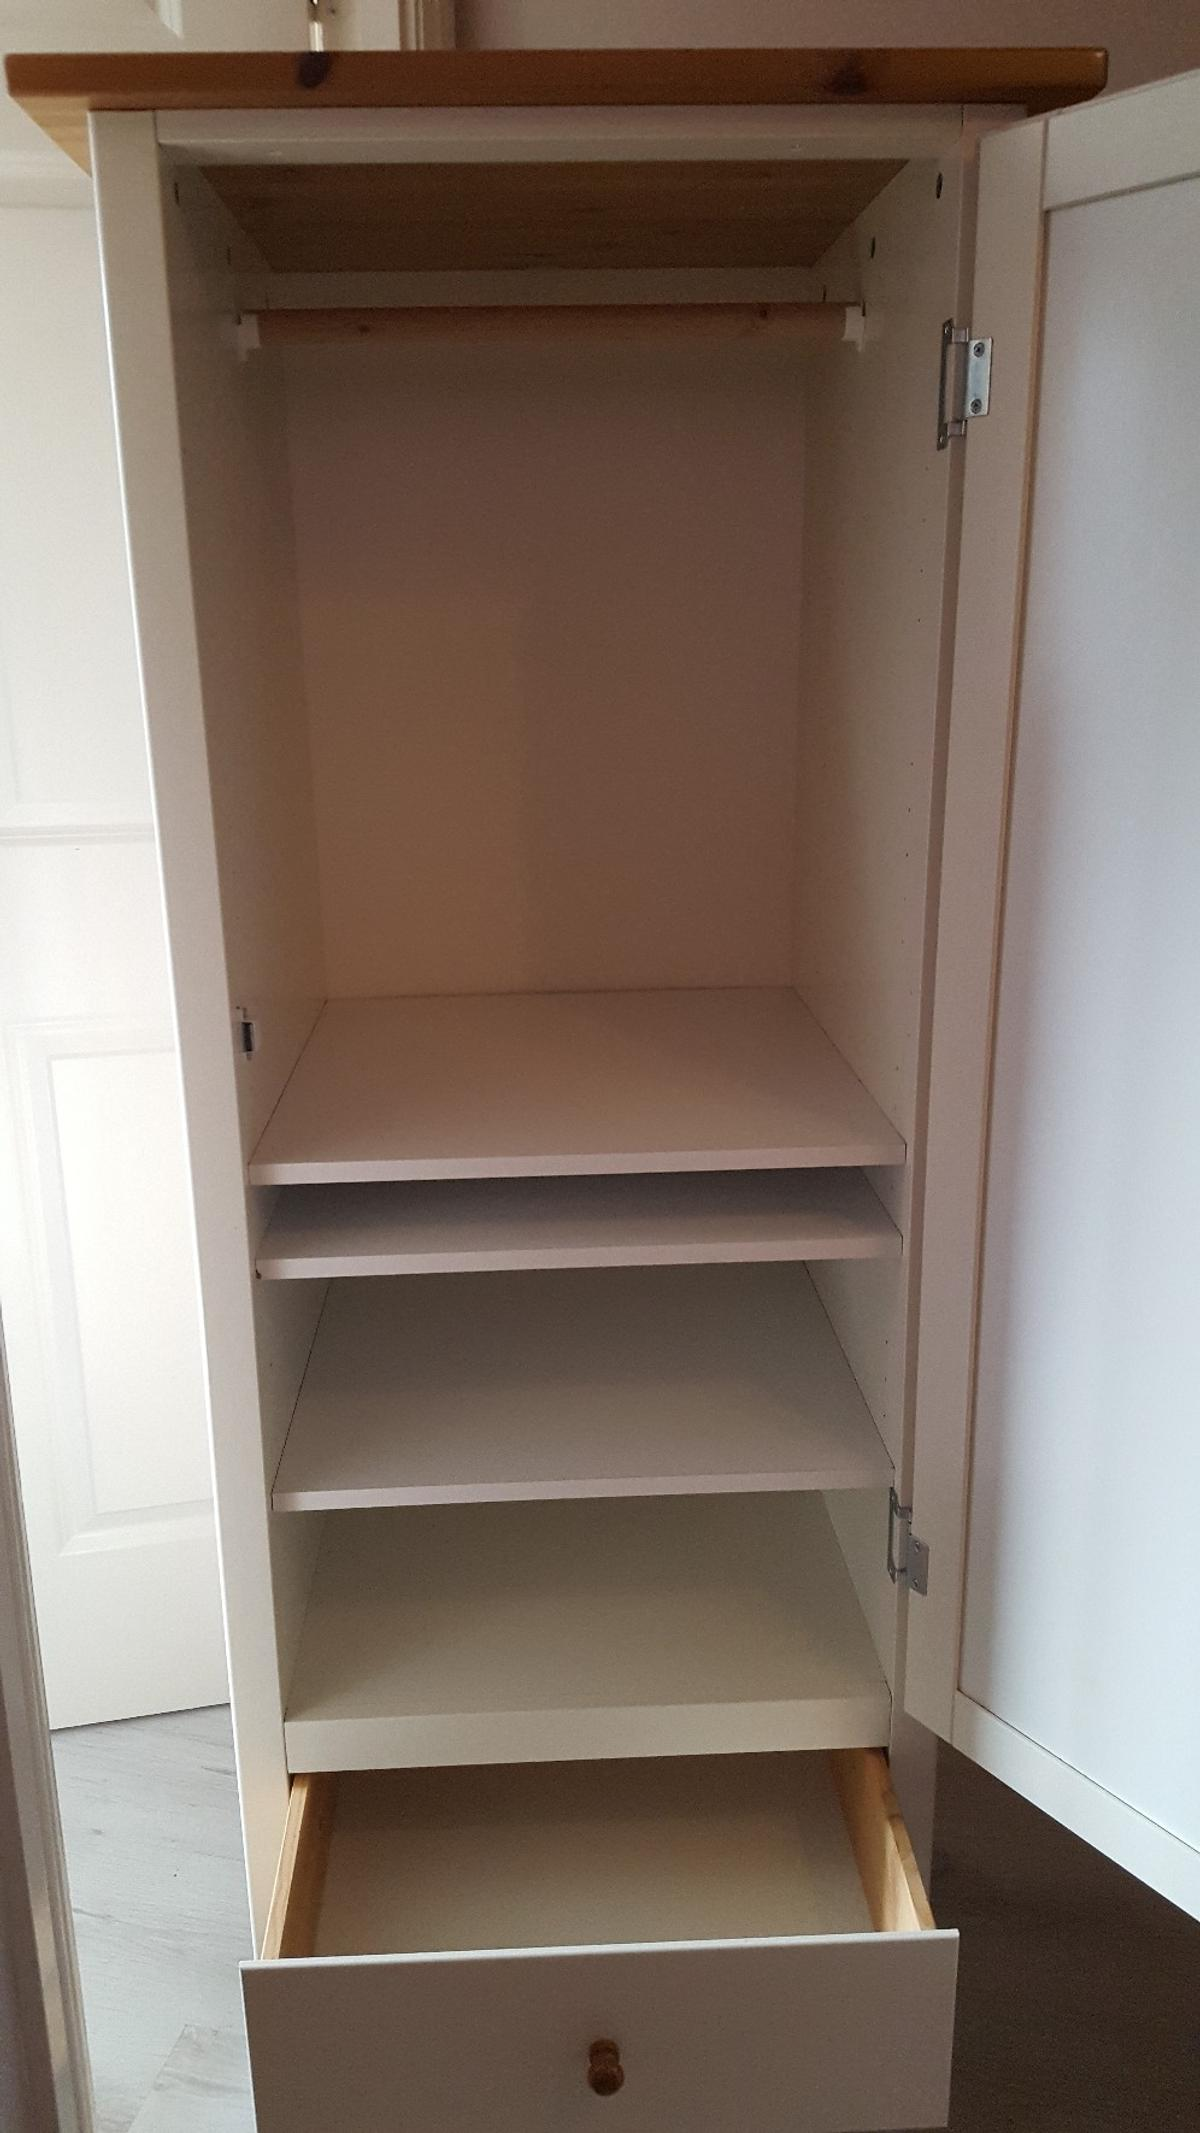 reputable site 0b3e5 f57ec Ikea Visdale Child / Baby wardrobe